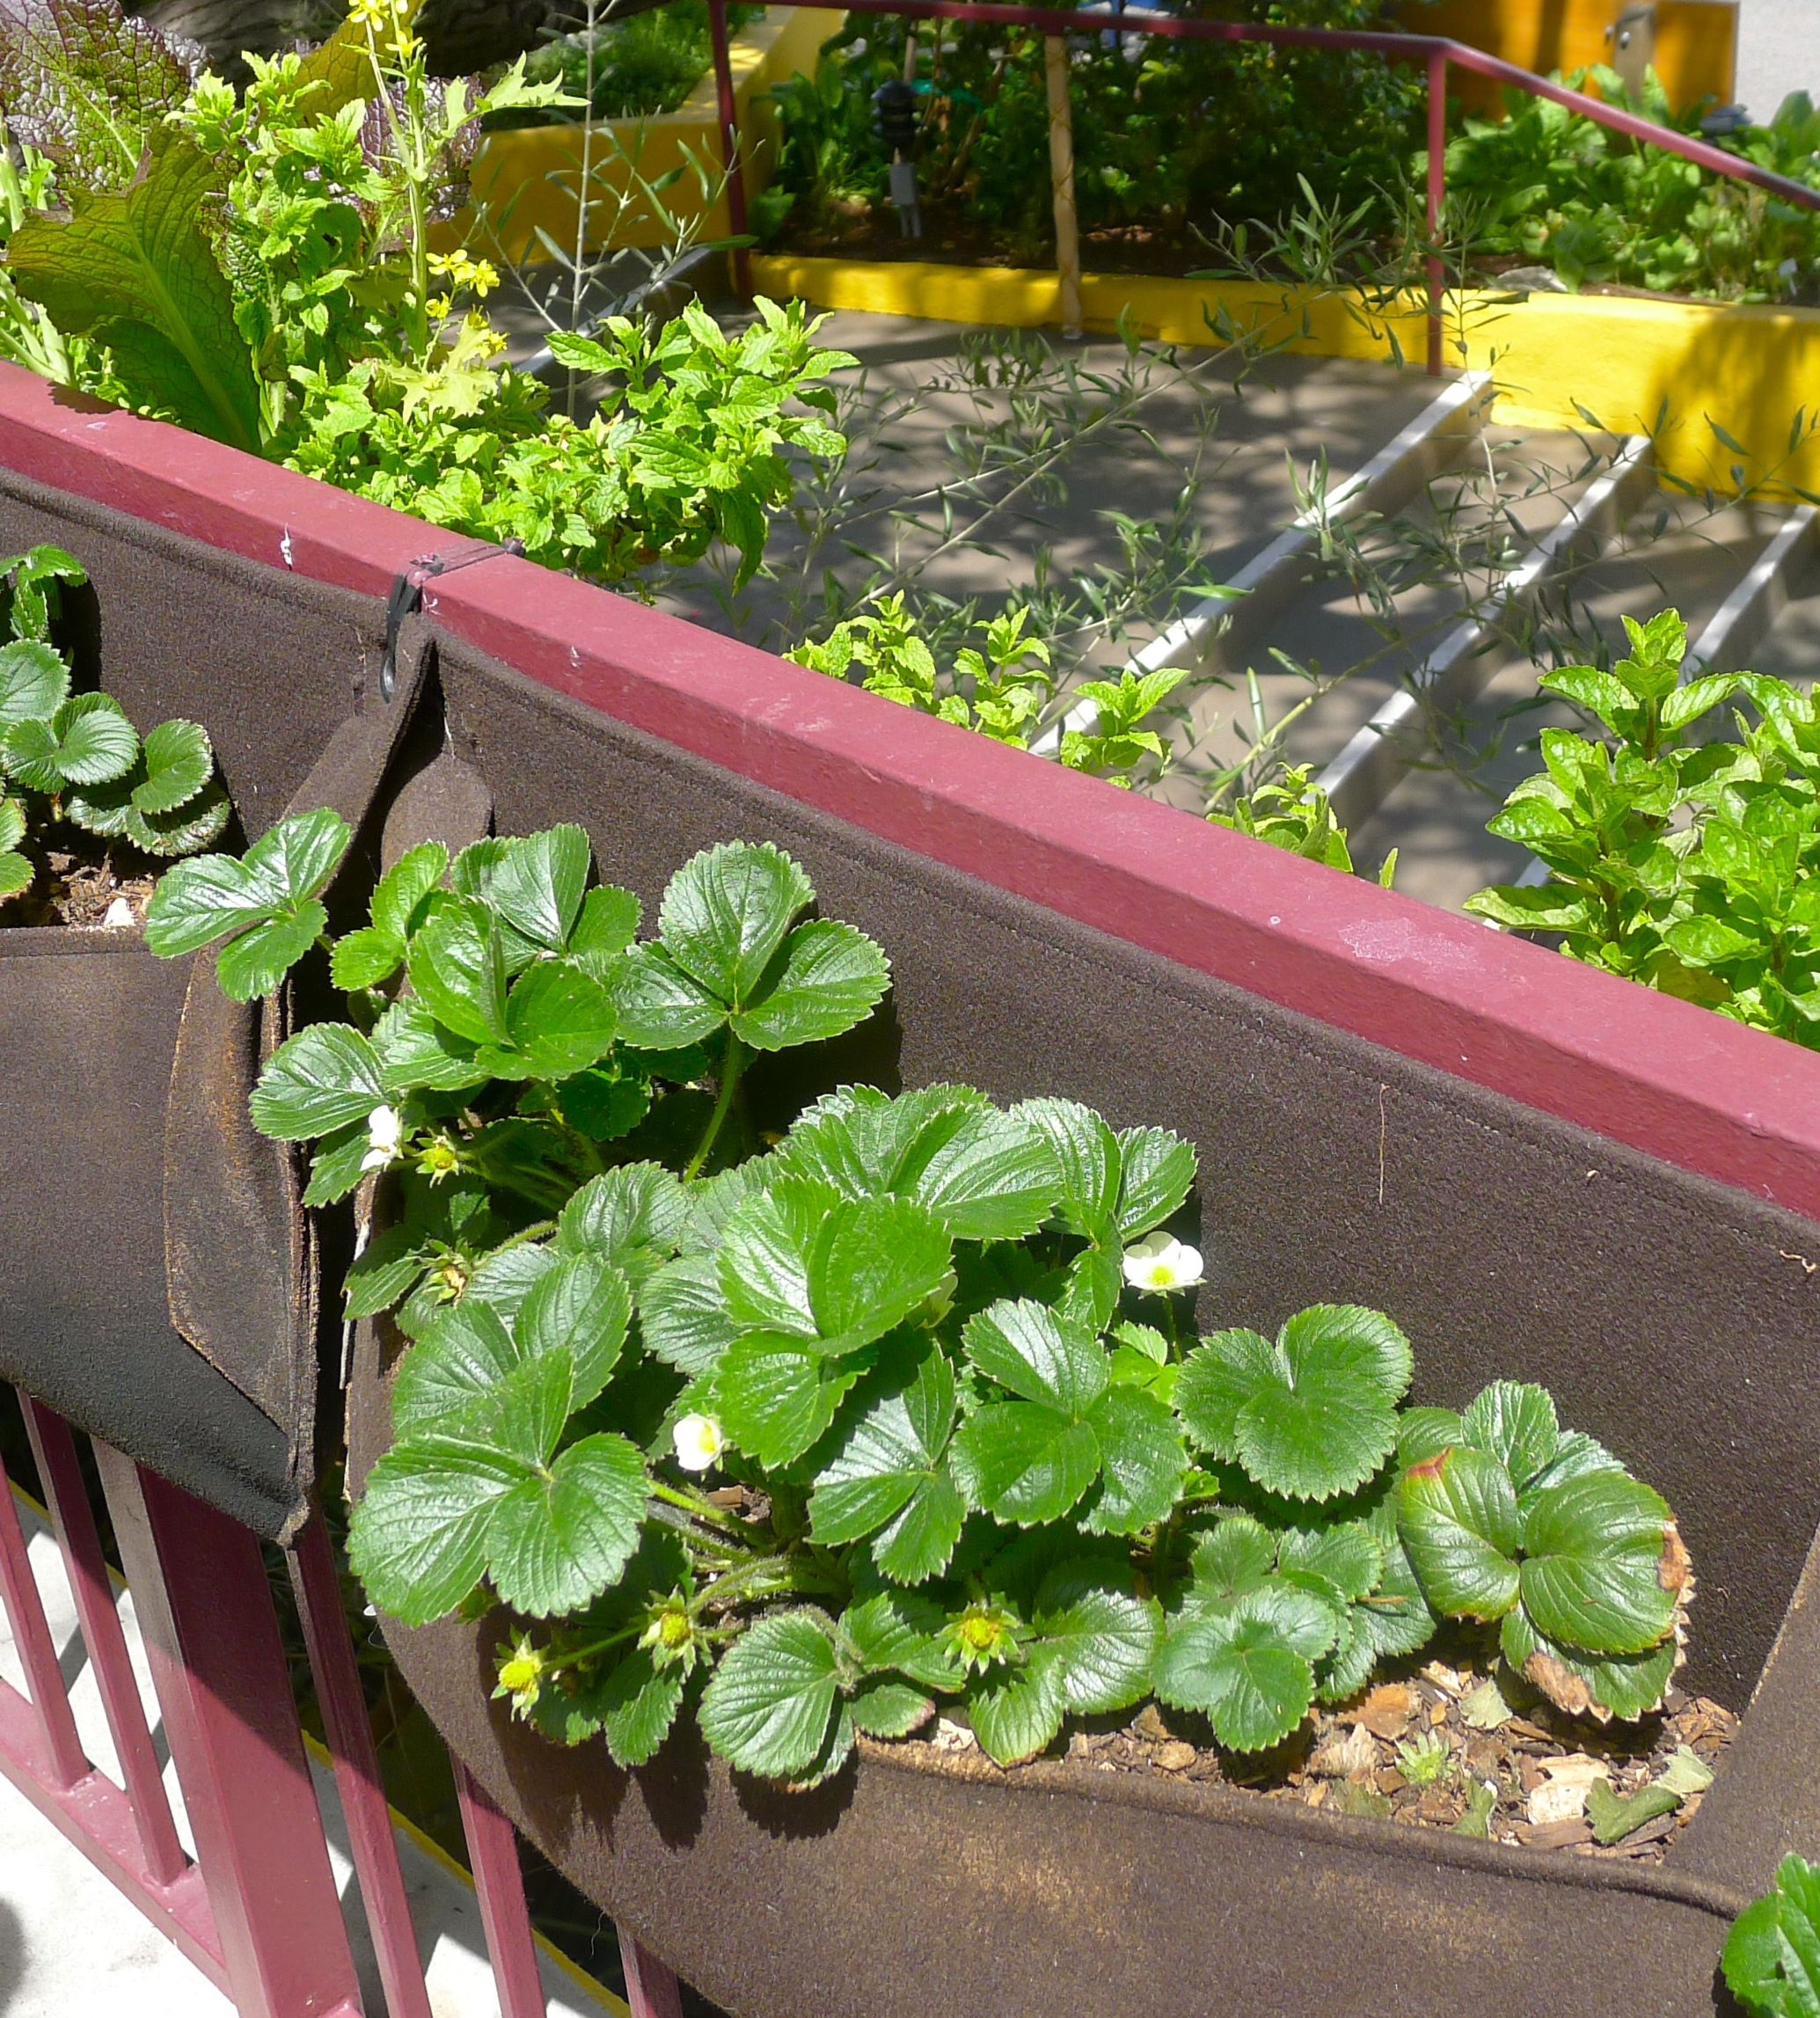 Edible Landscaping And Fairy Gardens: Beyond The Brochure